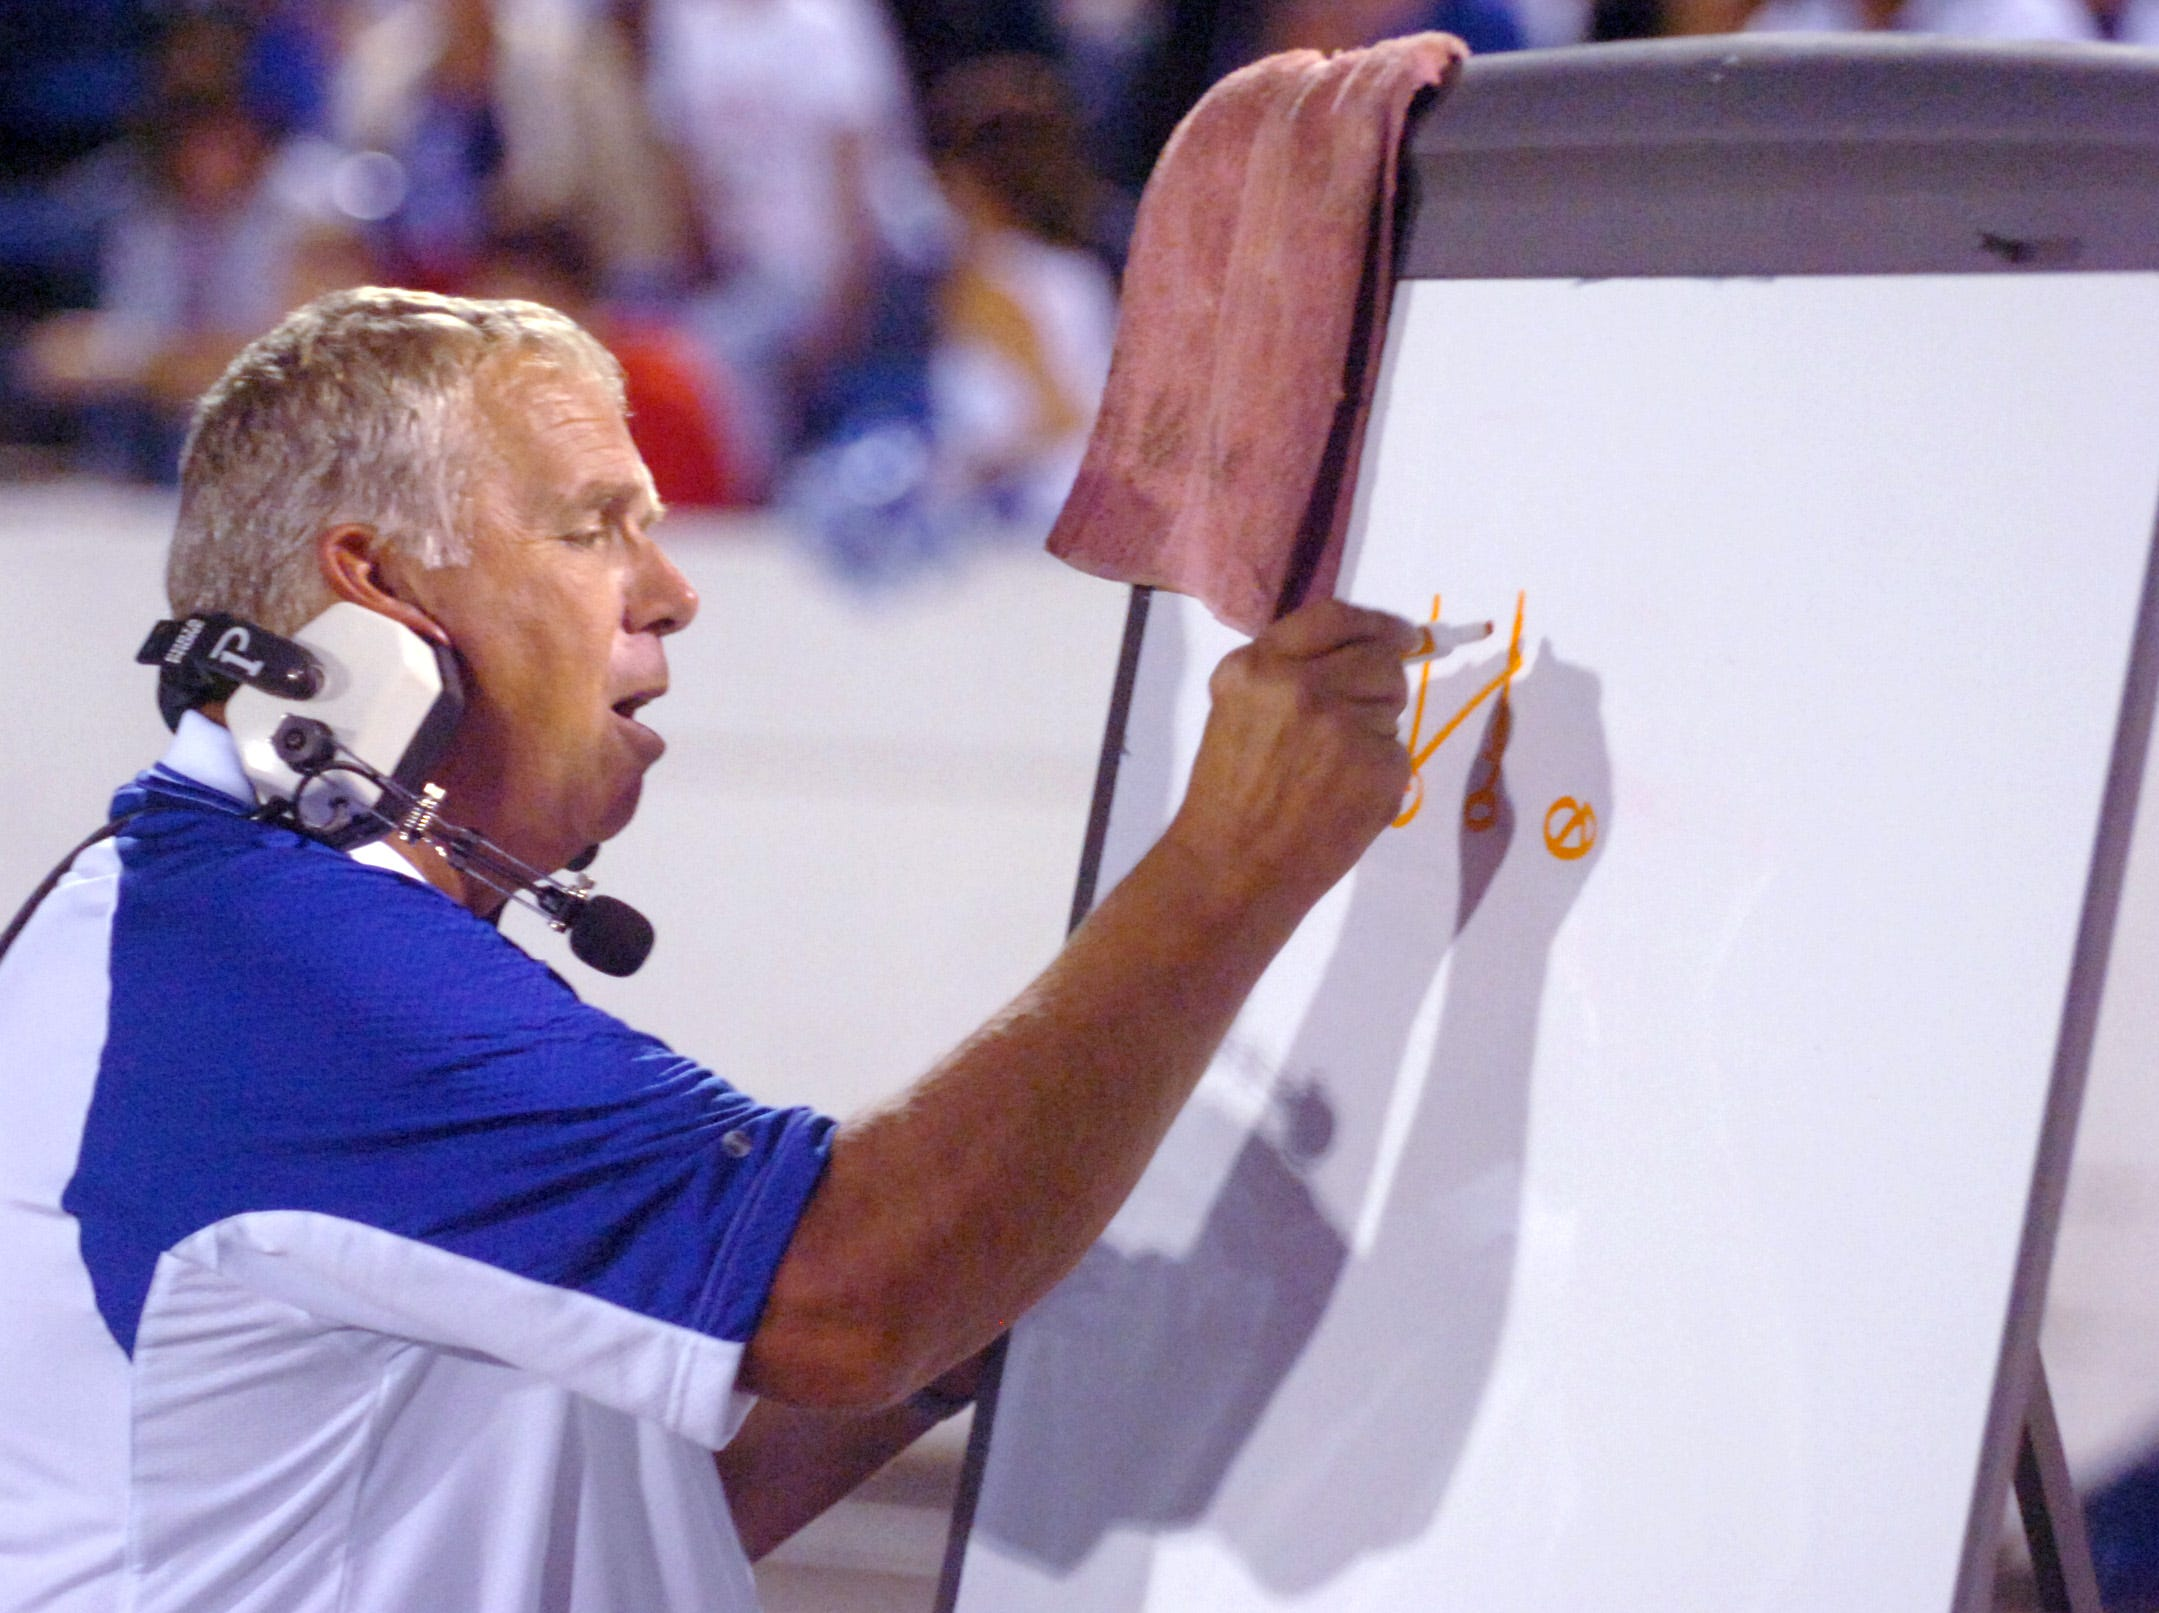 Chillicothe football coach Ron Hinton diagrams a play during the last year's home game against Ironton in September 2010.